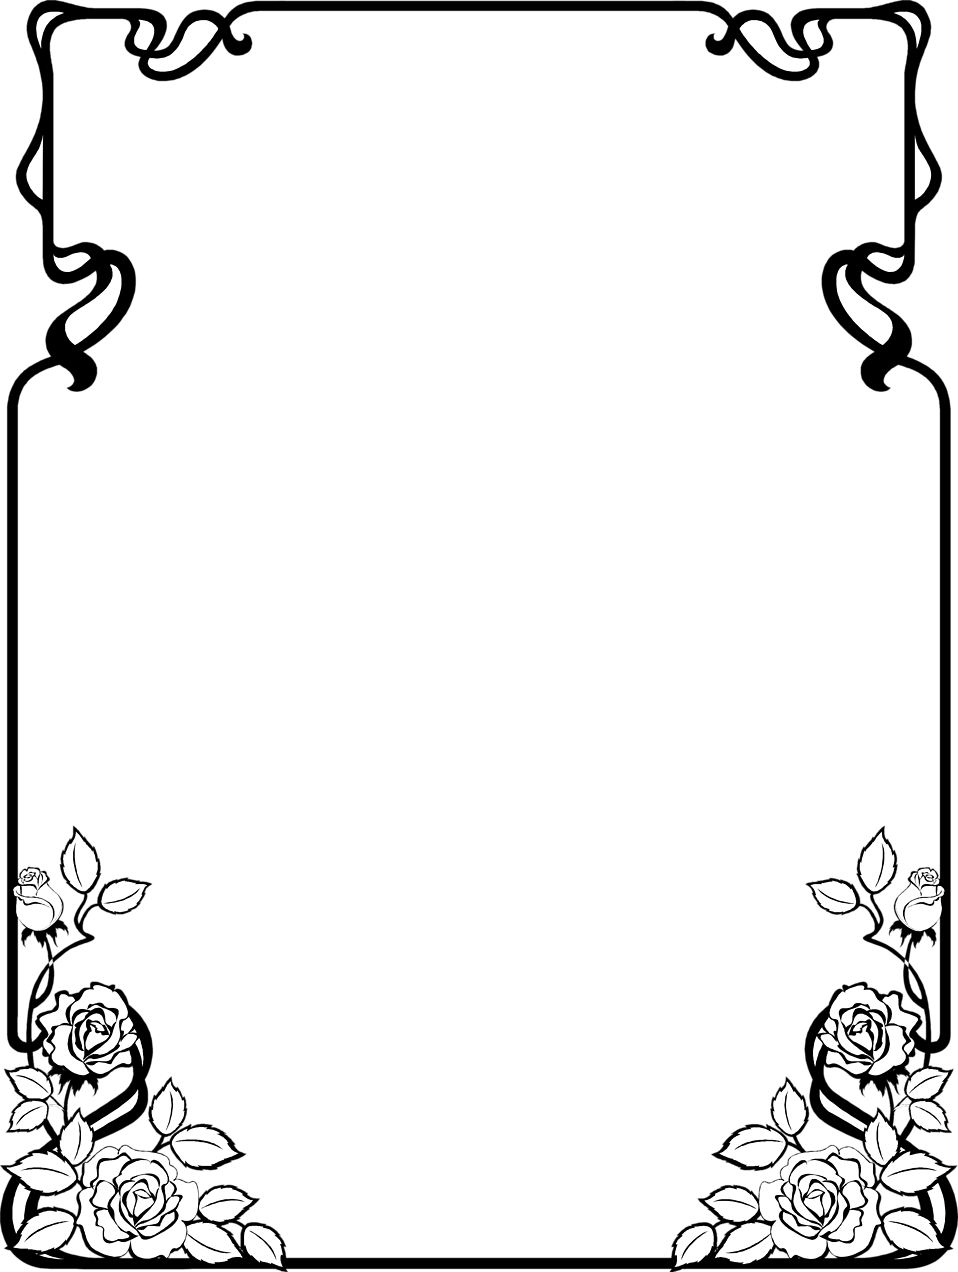 heart clipart border. 2011 heart clipart black and